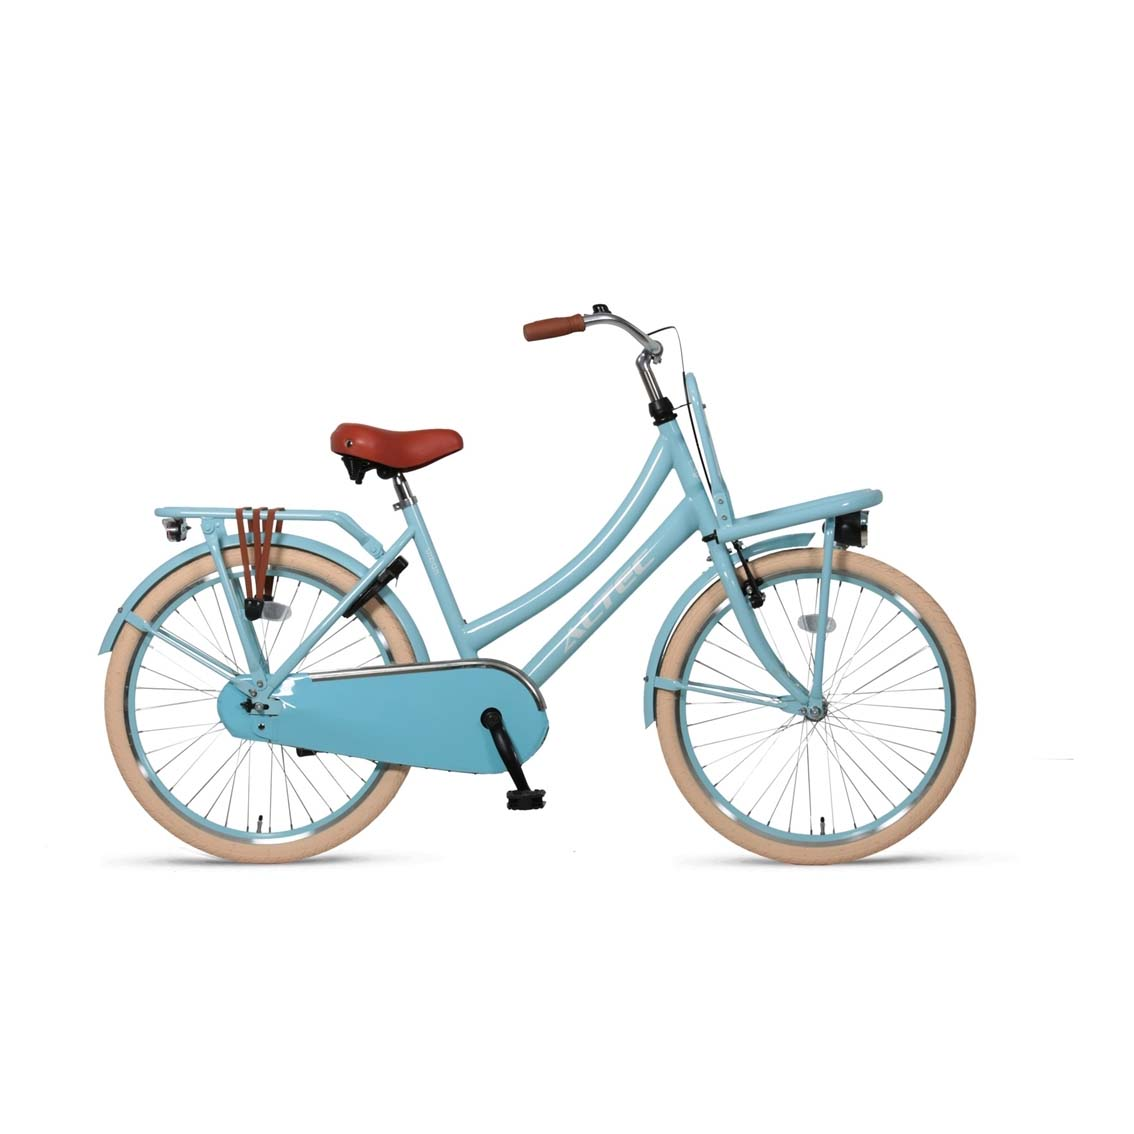 Altec-Urban-26inch-Transportfiets-Blue-2019 copy